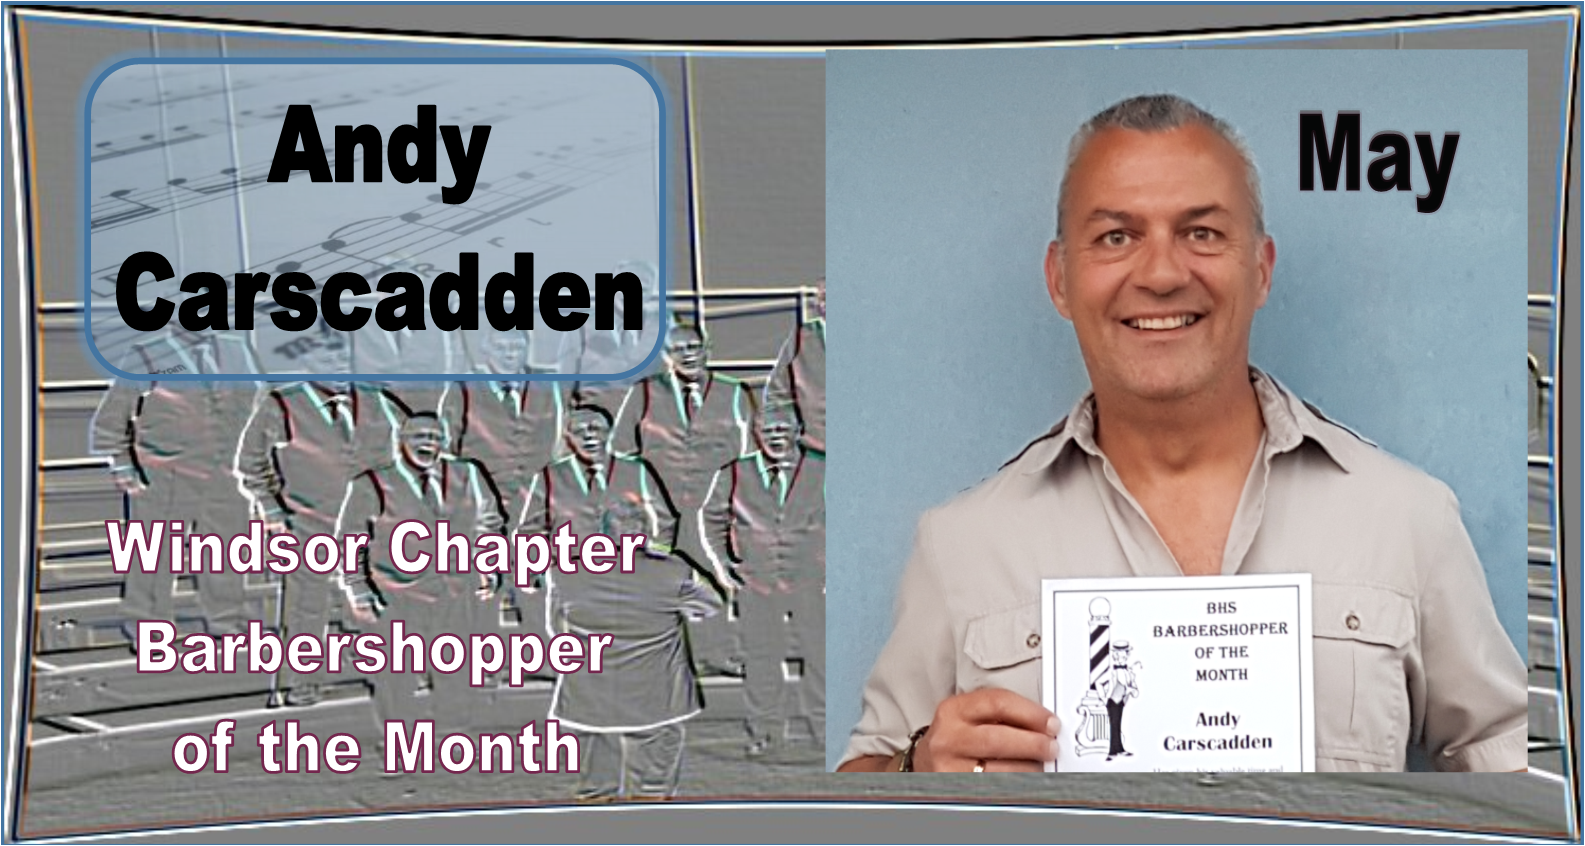 Barbershopper of the Month - Andy Carscadden